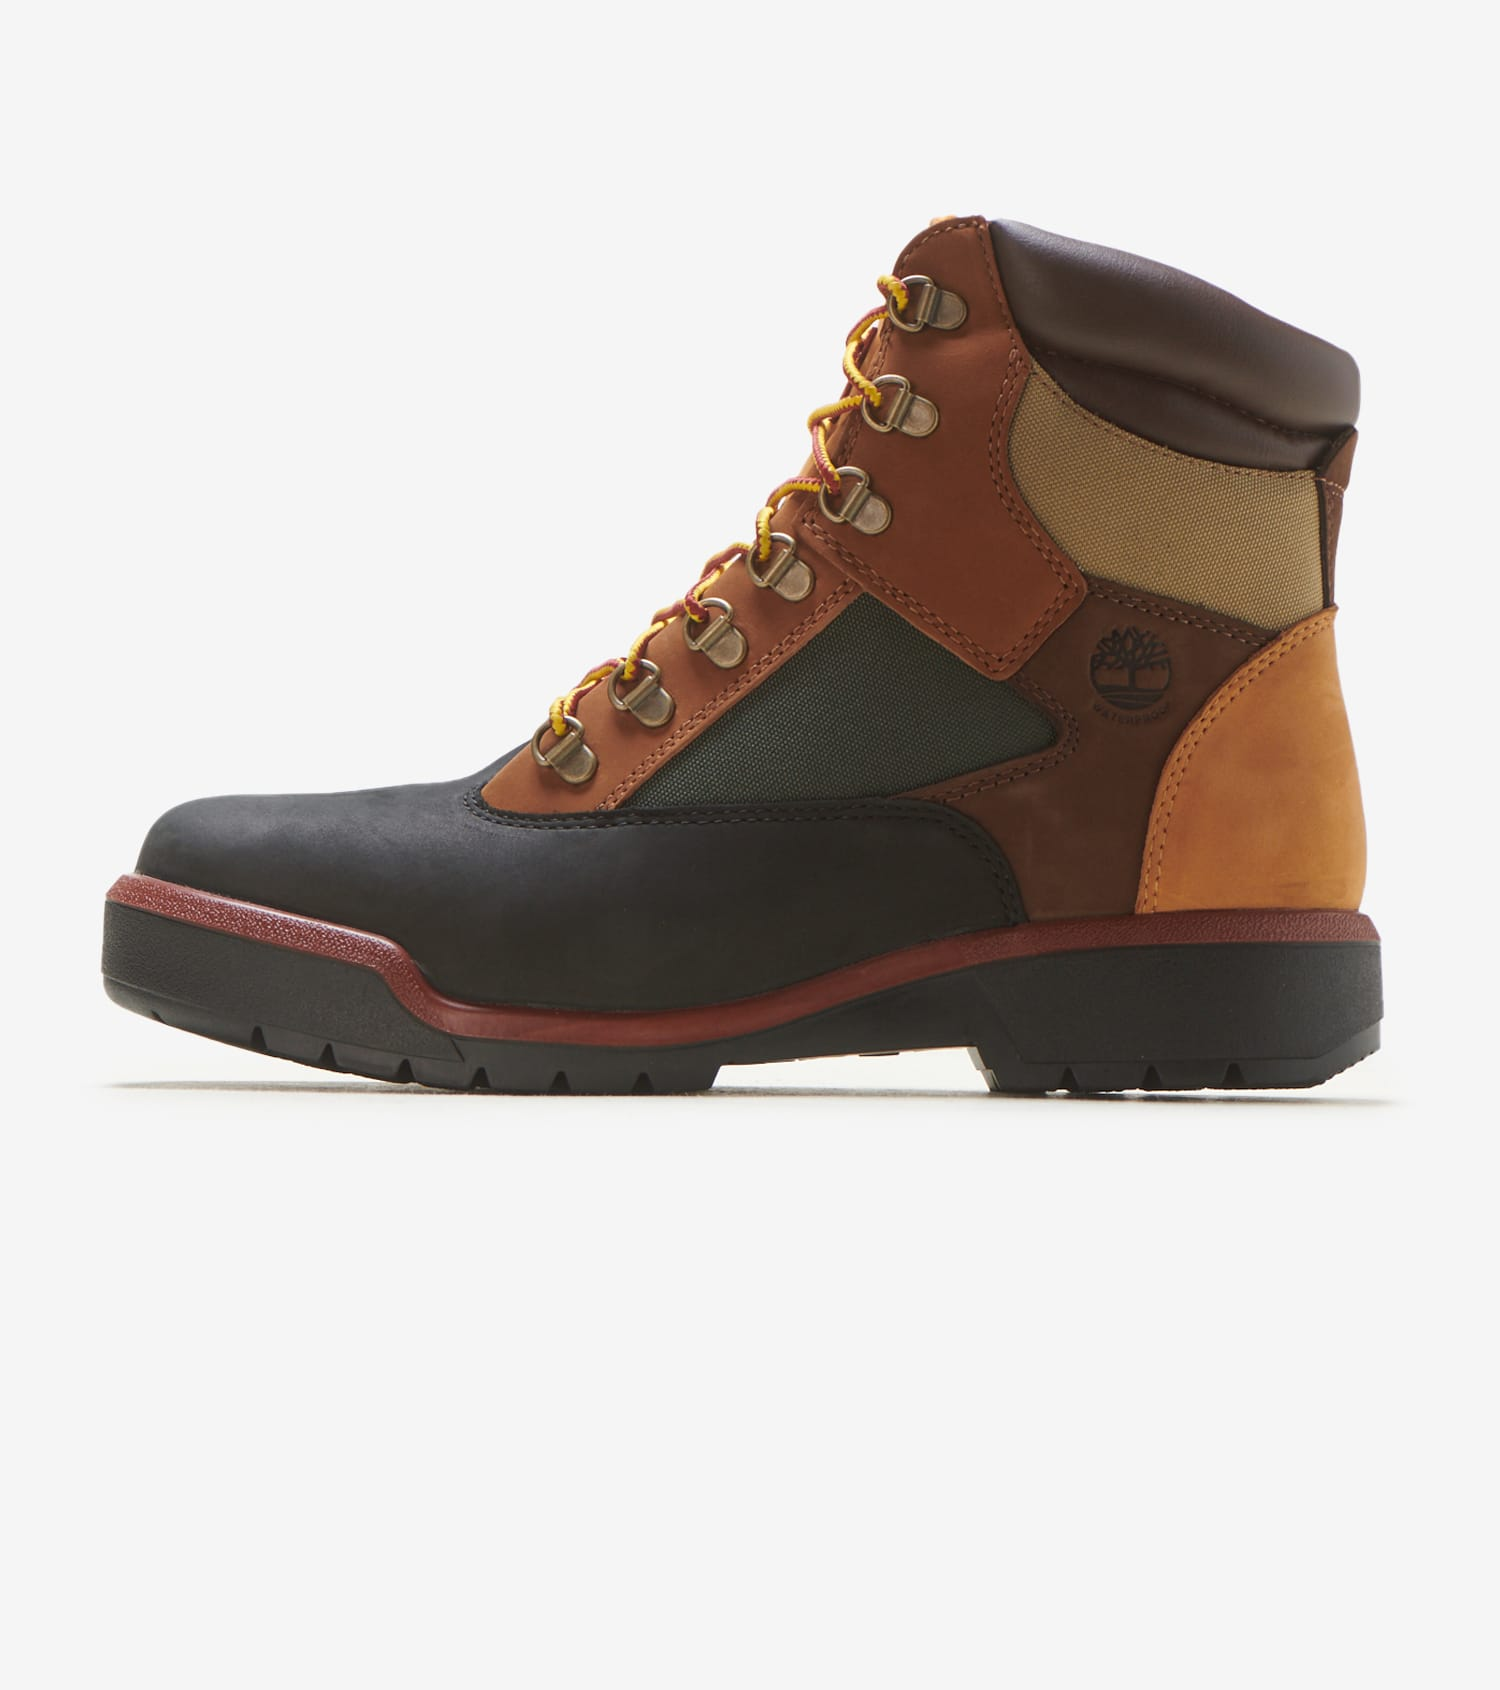 Timberland, New Era Made Limited Edition Boots for All Star